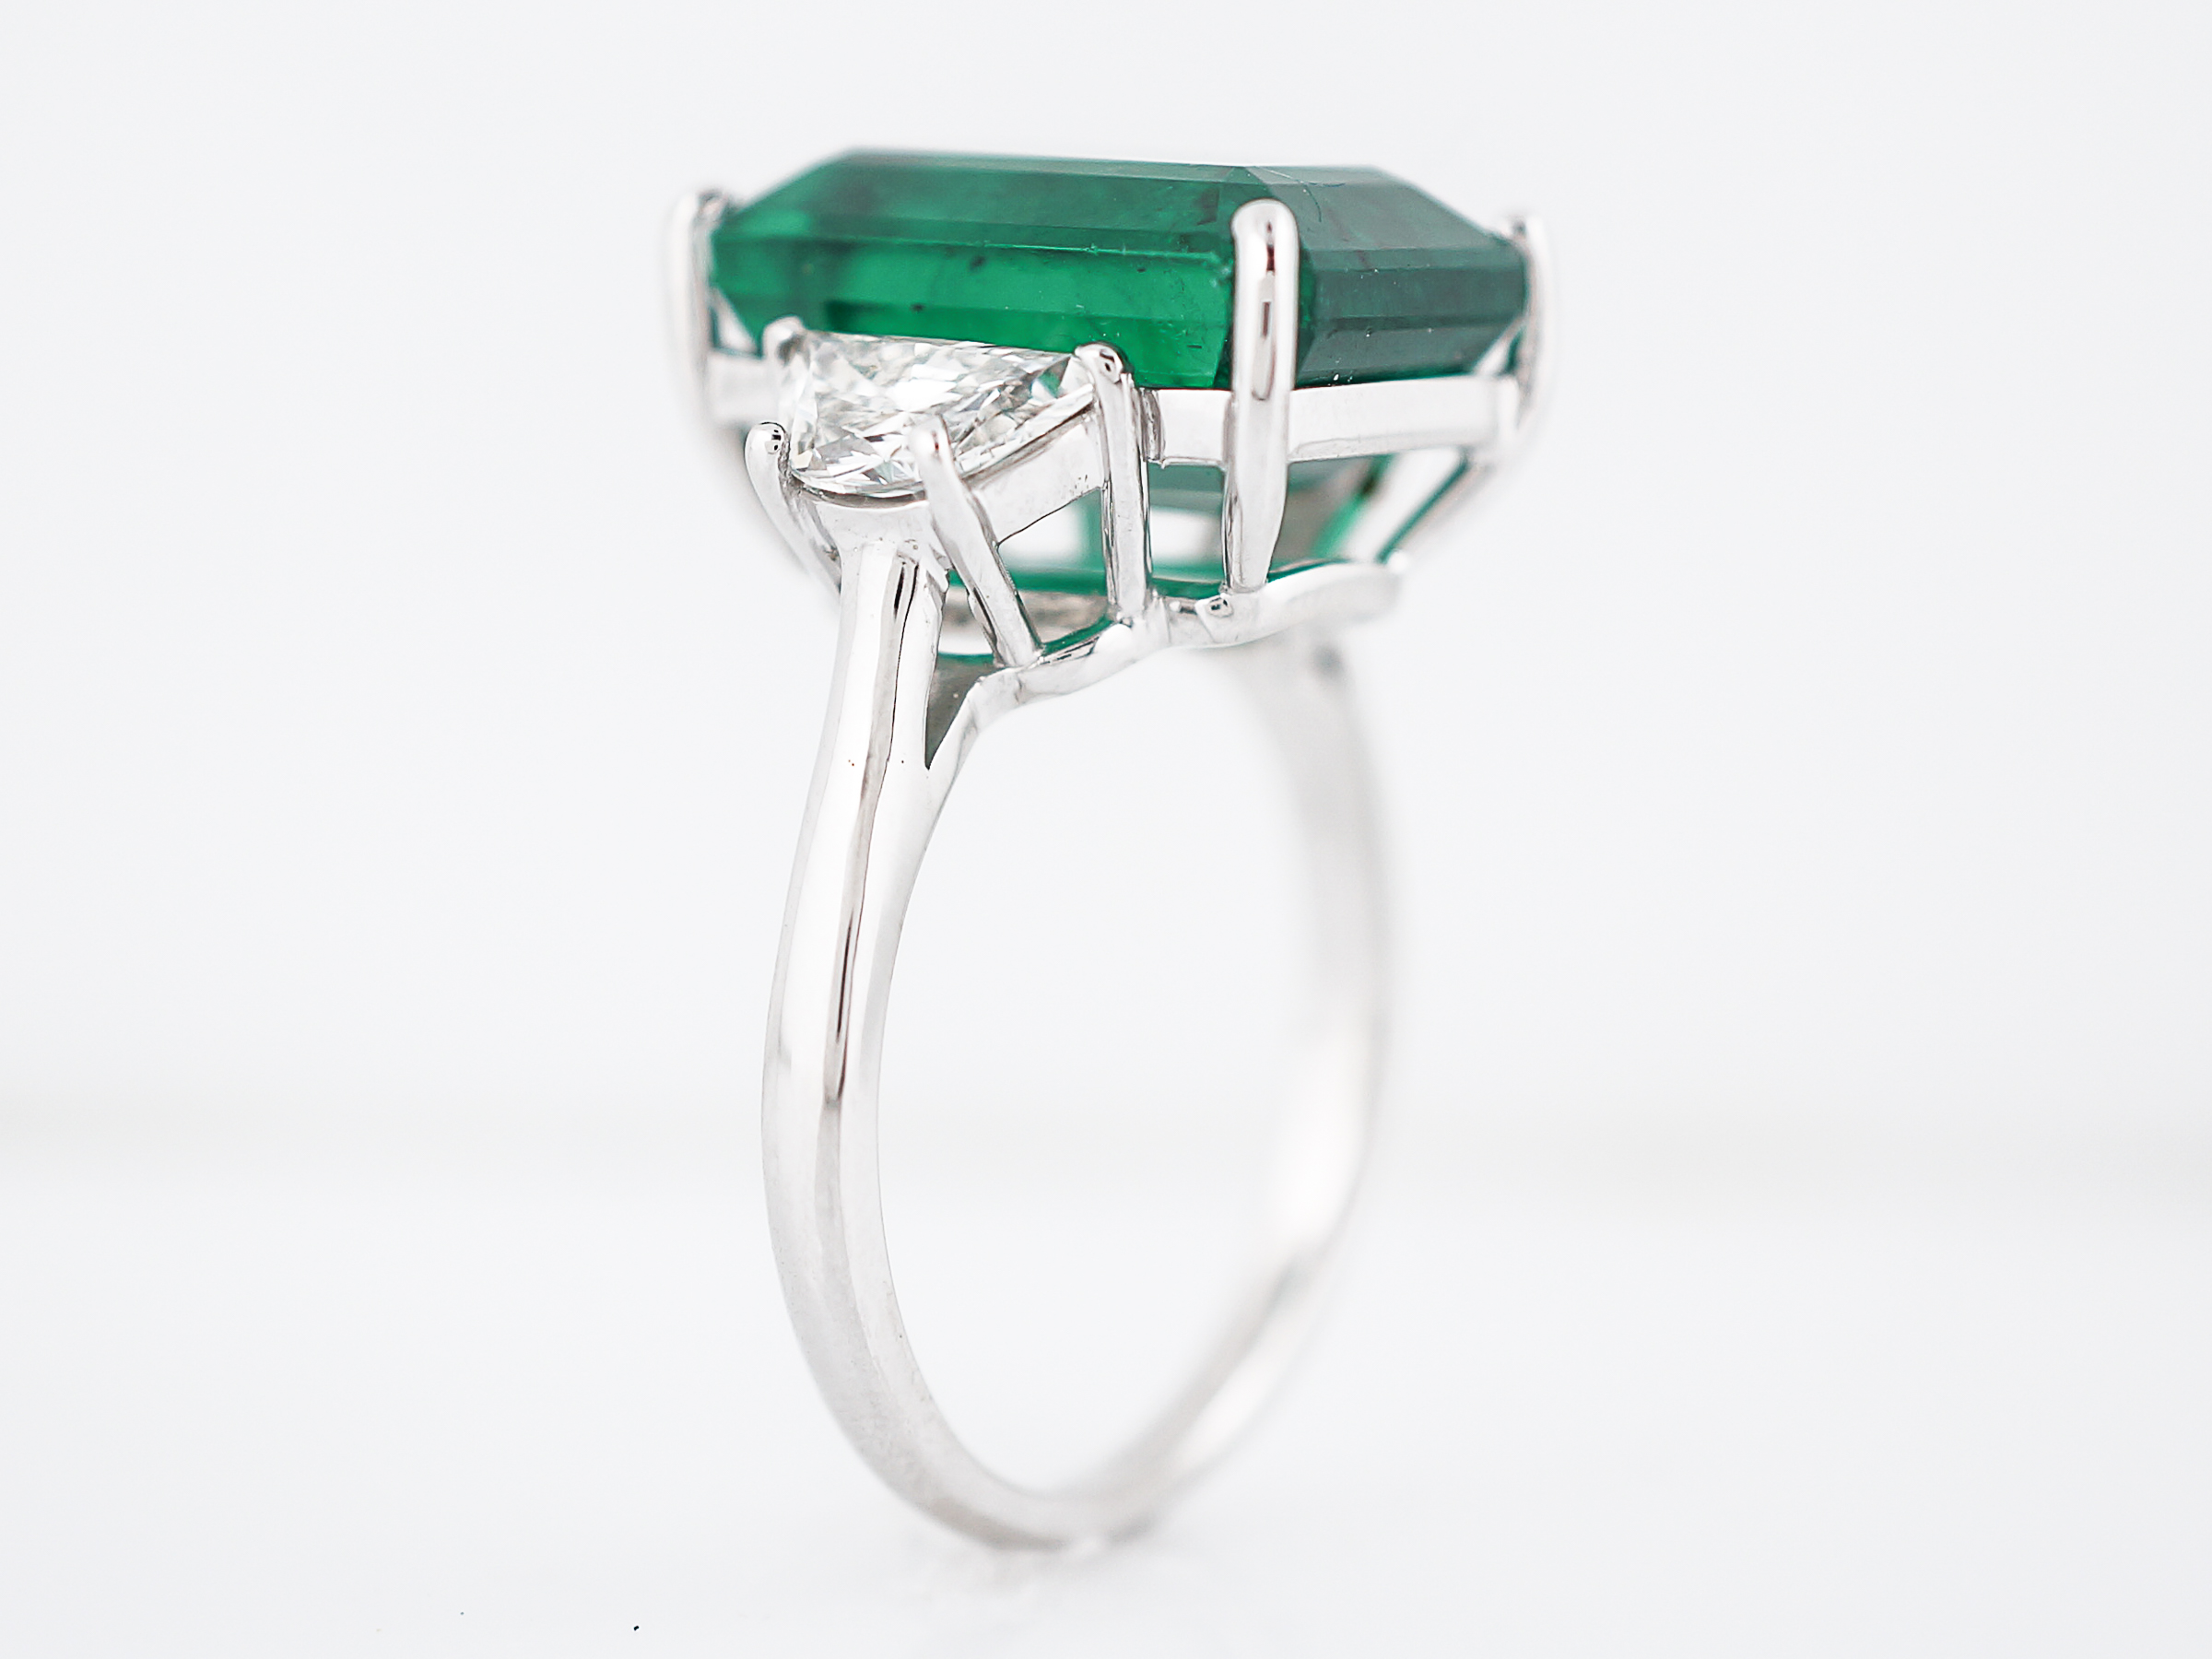 an csm gold en projects columbian white auction a ring and lot auktionshaus col emerald lempertz catalogues